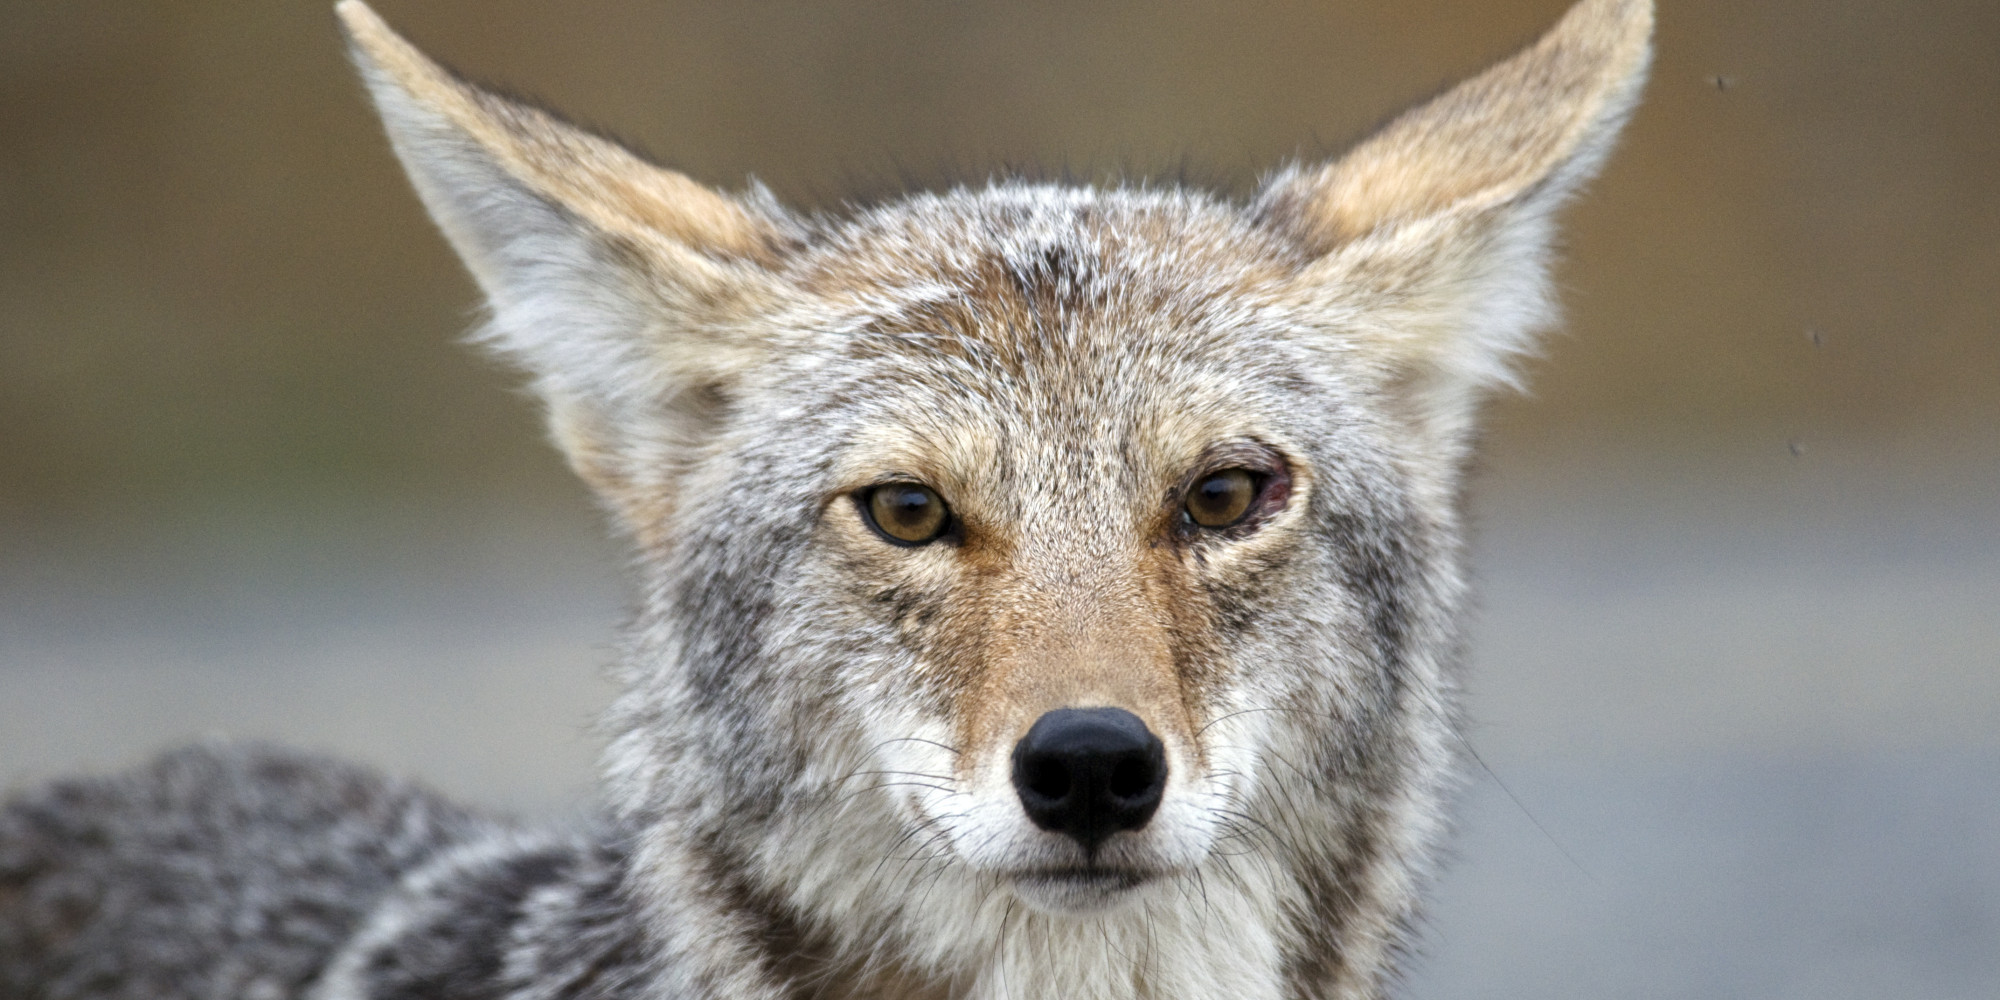 coyote running wild on i 55 stevenson expressway delays morning rush before dashing off video. Black Bedroom Furniture Sets. Home Design Ideas